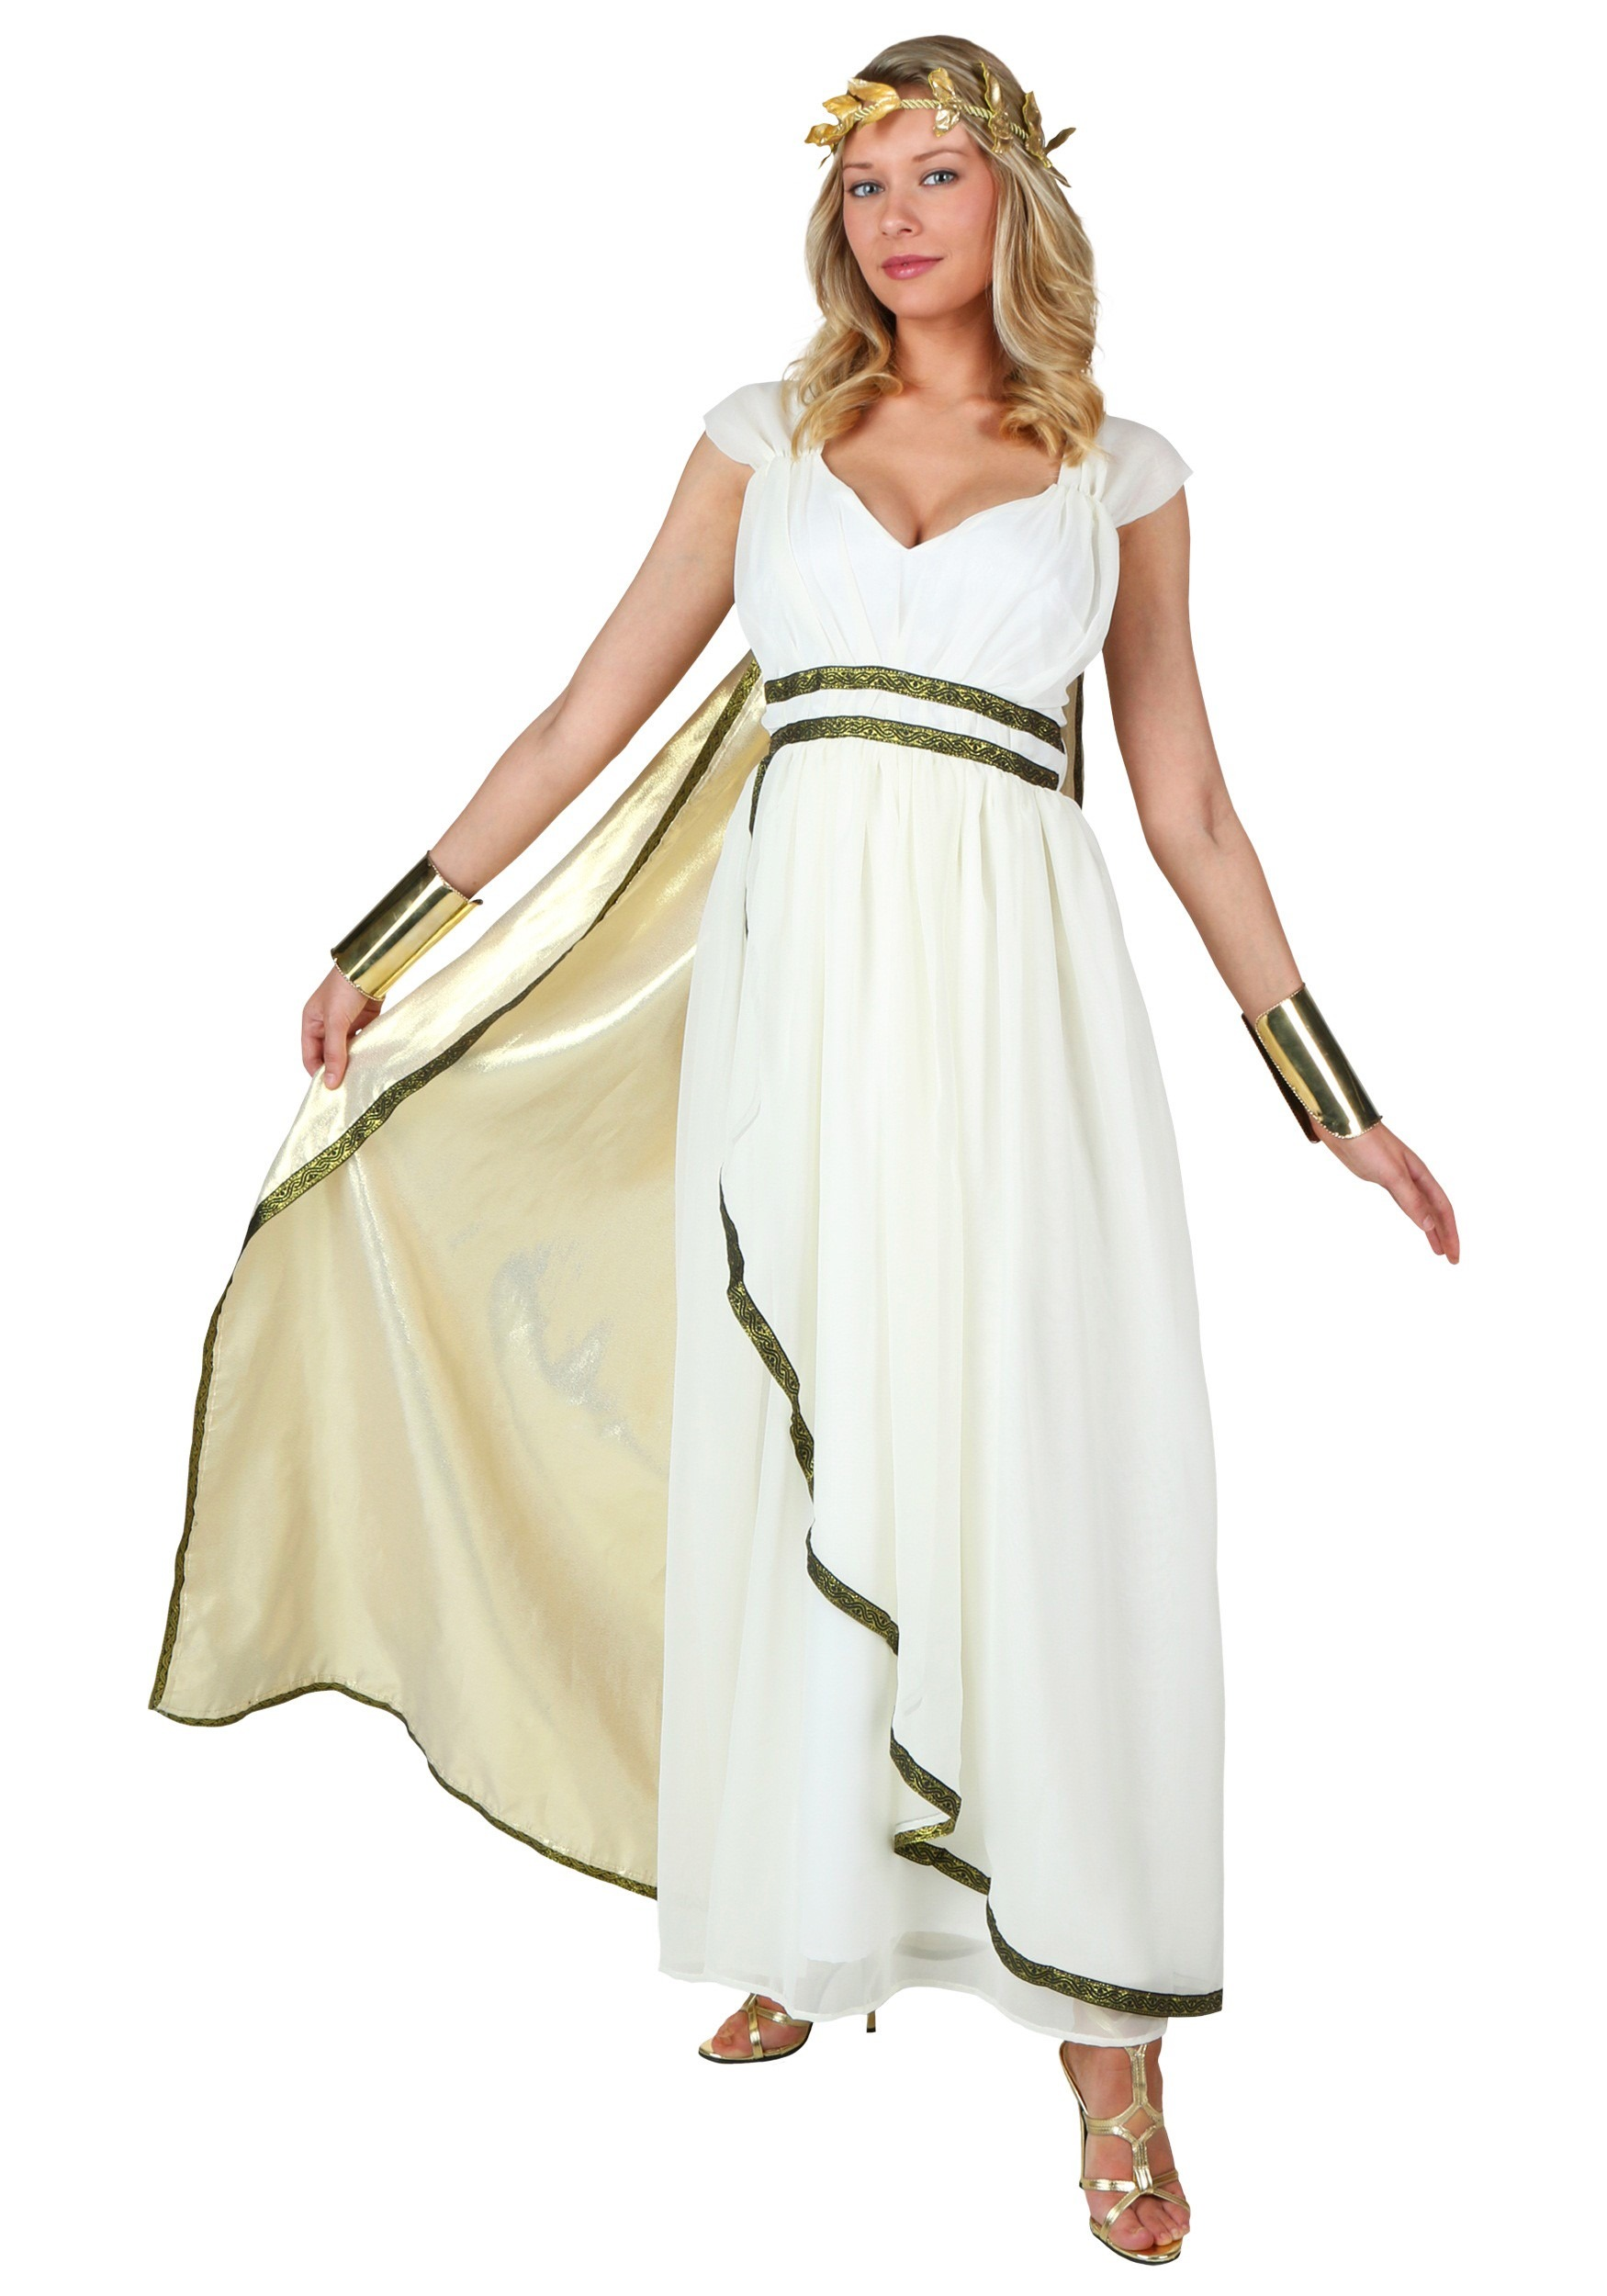 Women's Goddess Costume